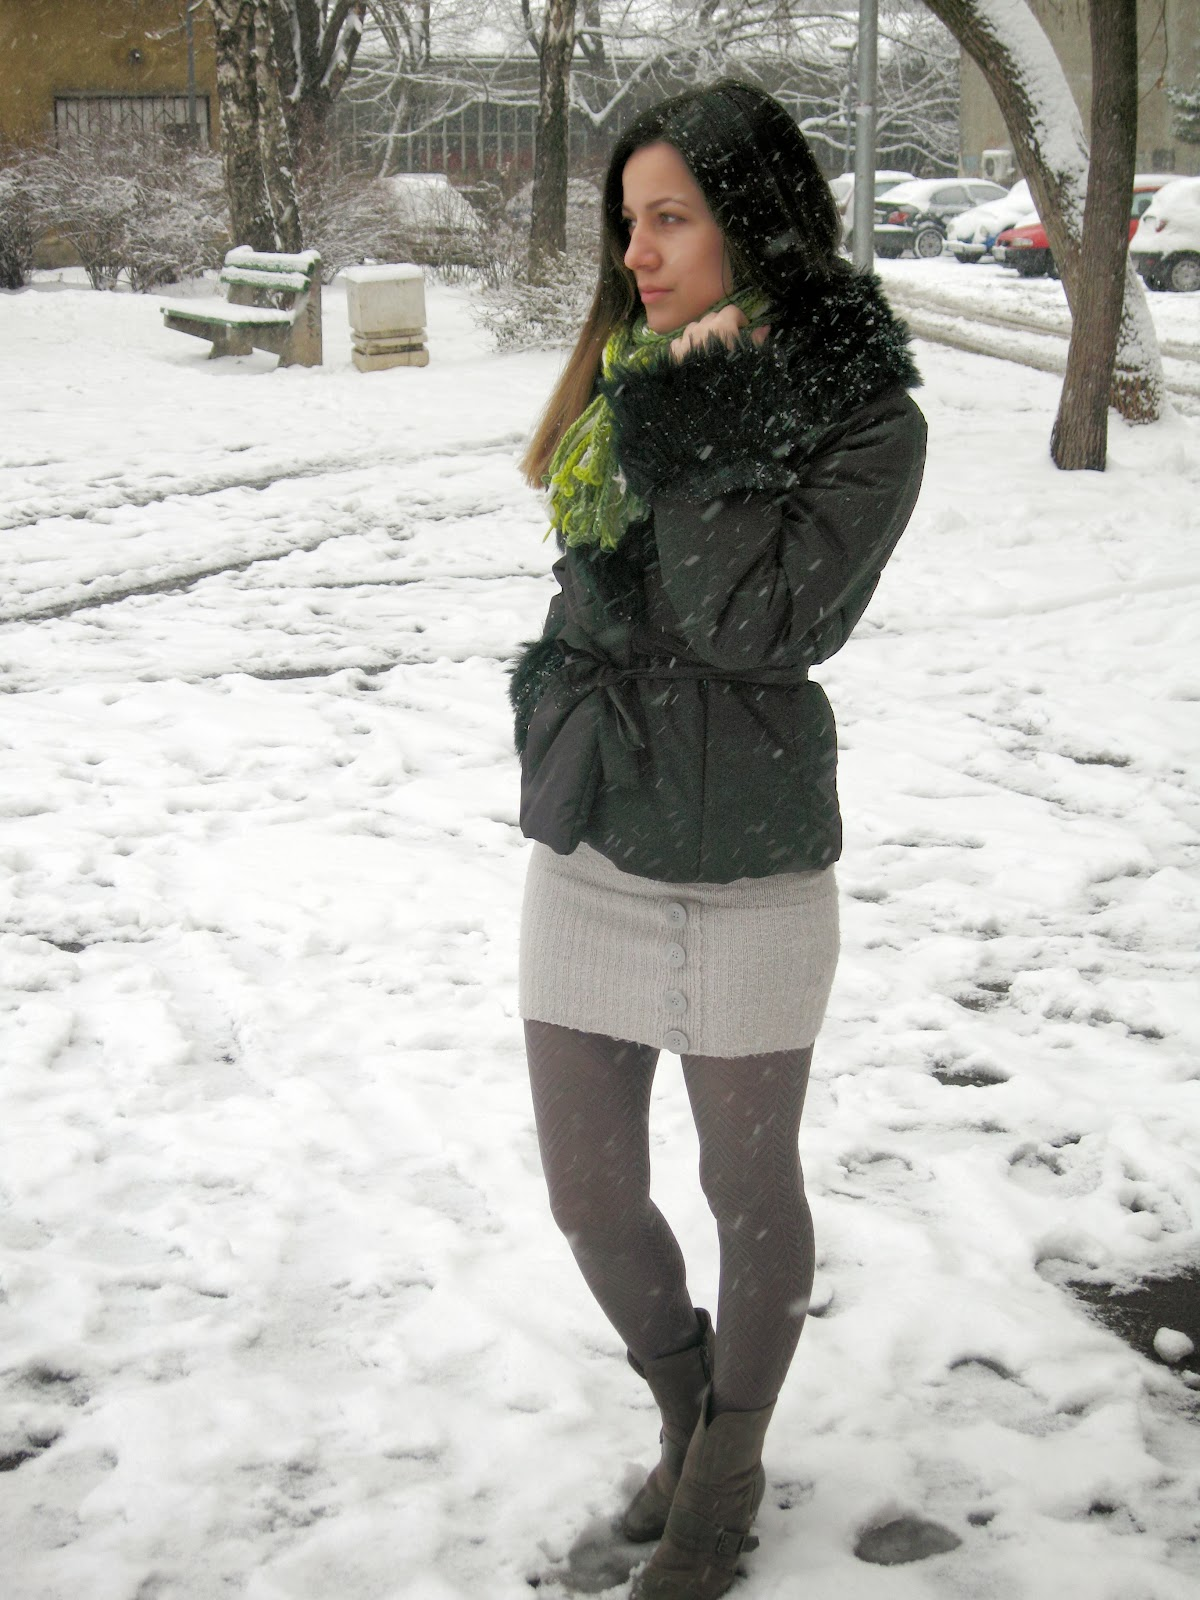 snowy winter outfit